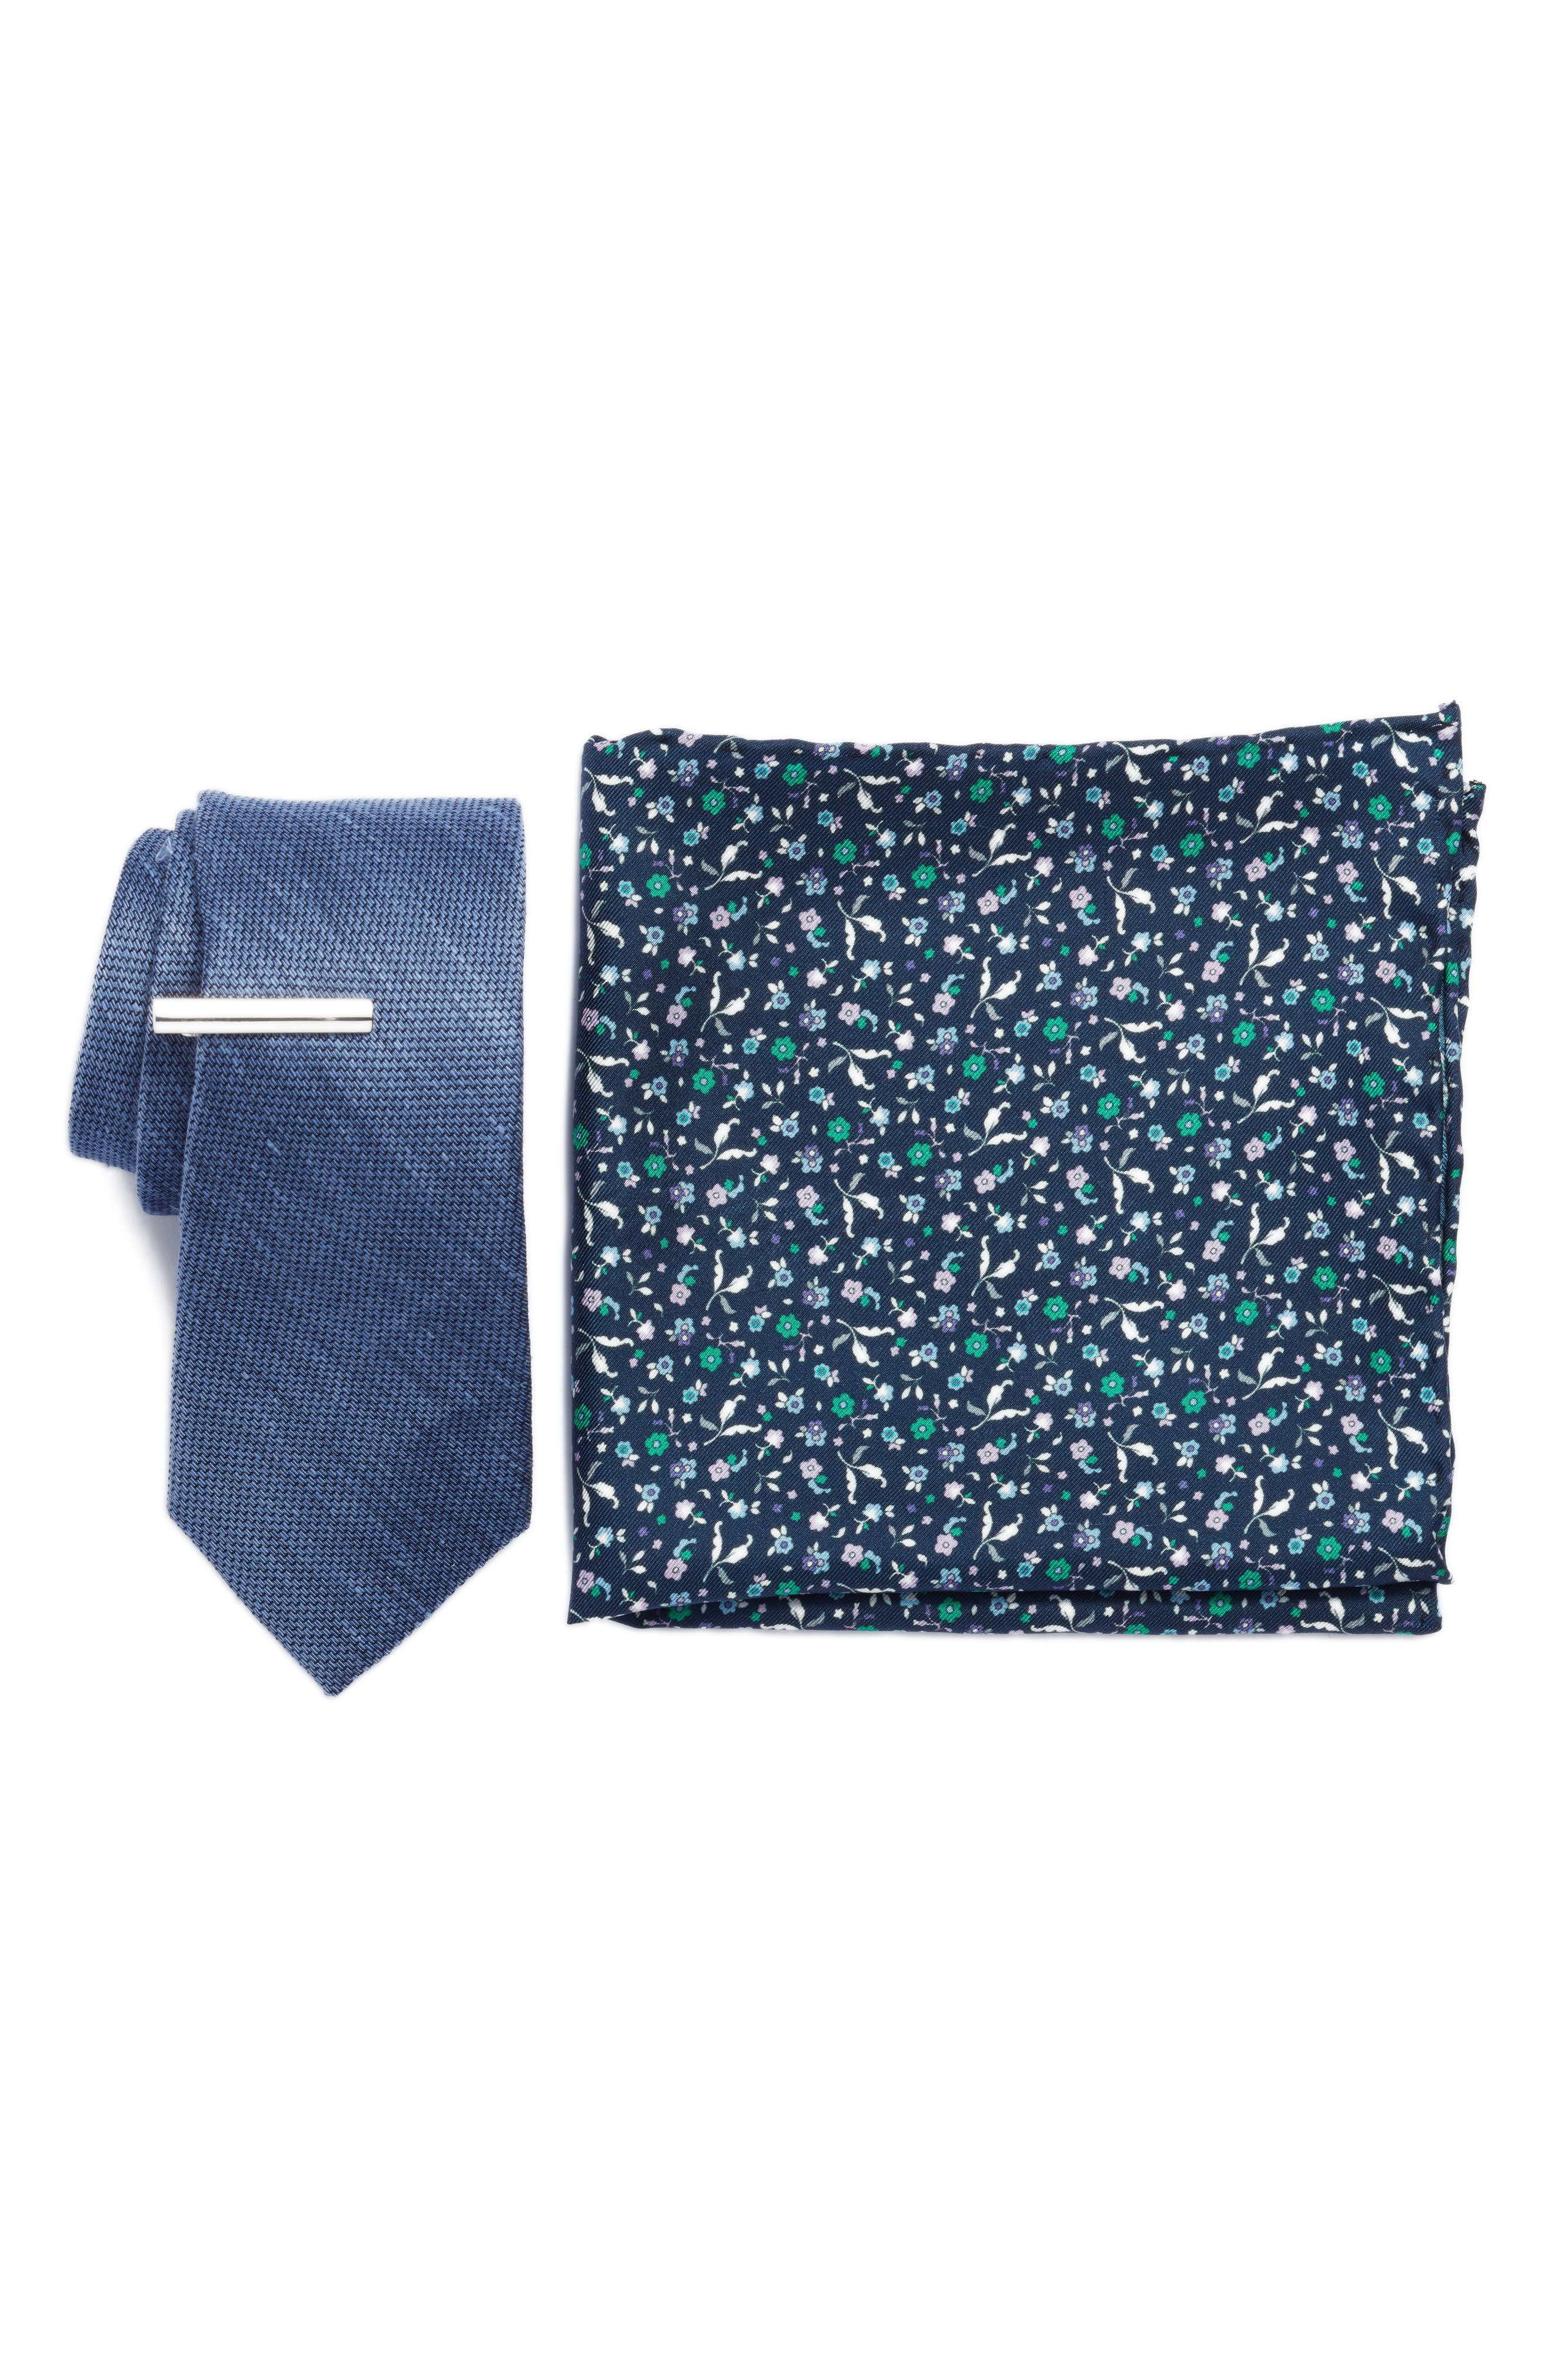 Texture Solid 3-Piece Skinny Tie Style Box,                         Main,                         color, LIGHT BLUE